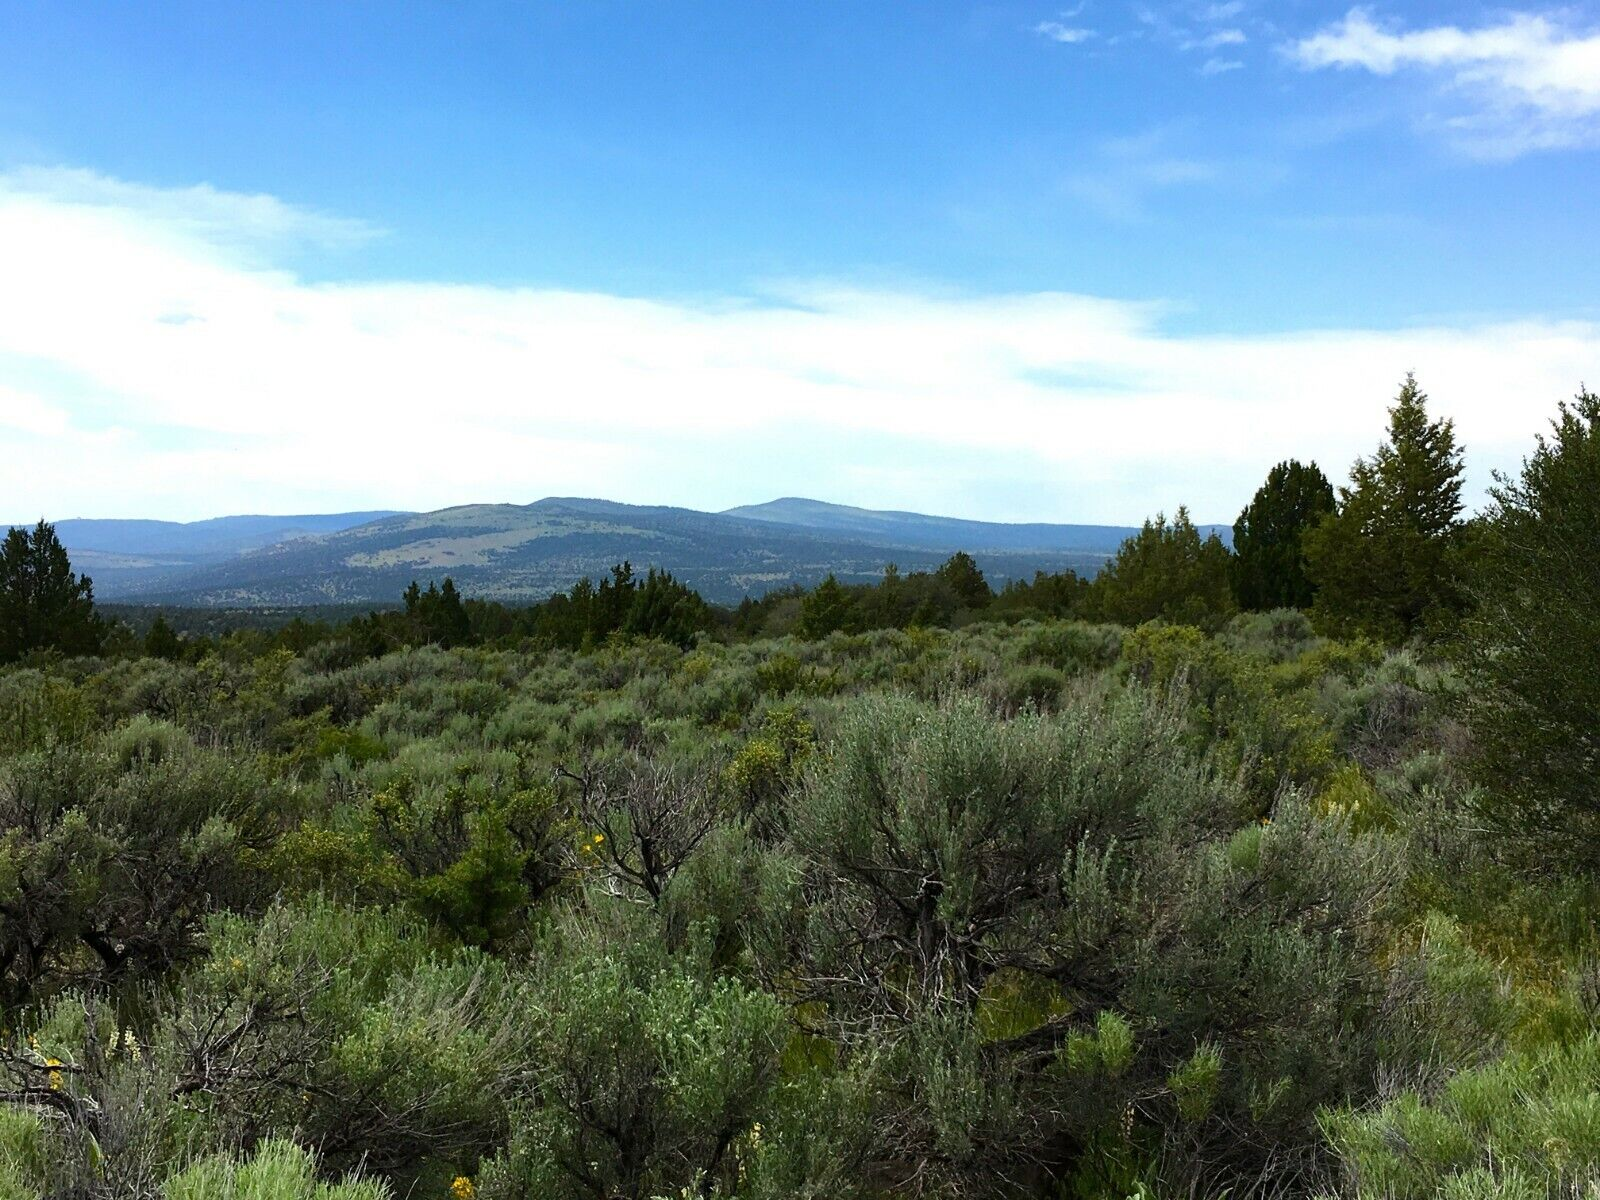 20.42 ACRES NORTHERN CALIFORNIA VIEW PROPERTY VIEWS  - $29,995.00